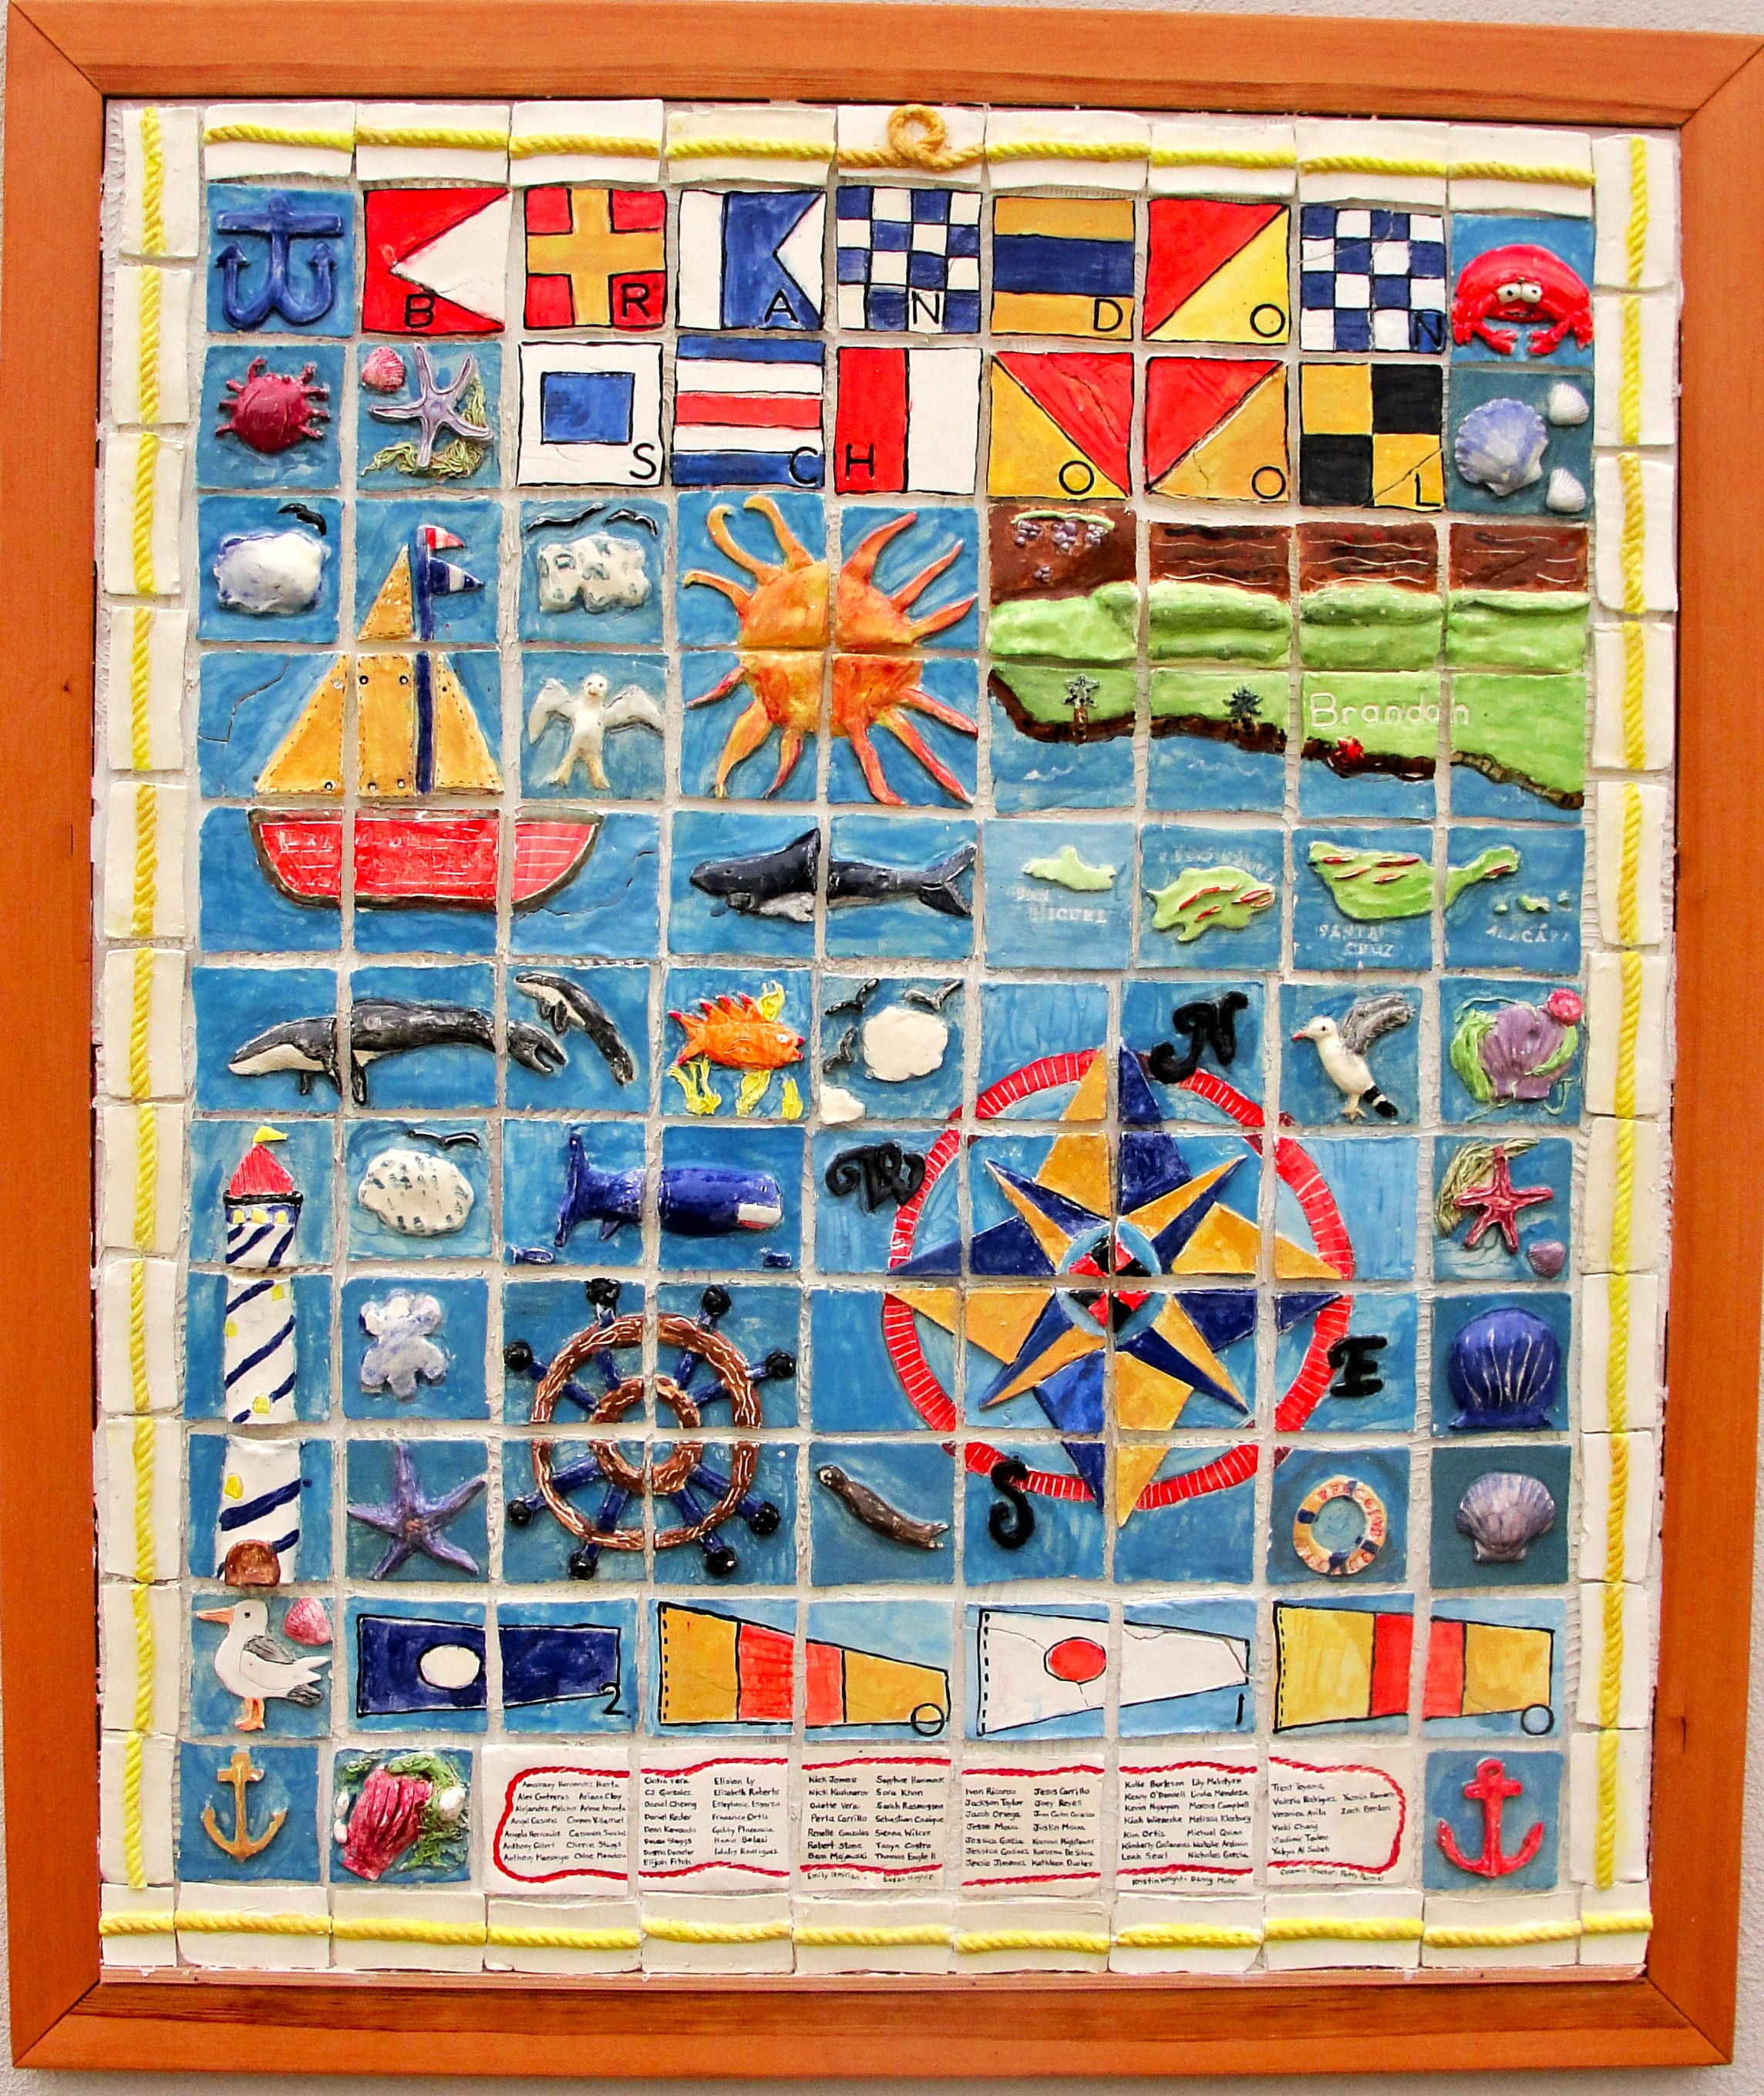 Nautical ceramic tile mural collaborative art project for for Ceramic mural designs